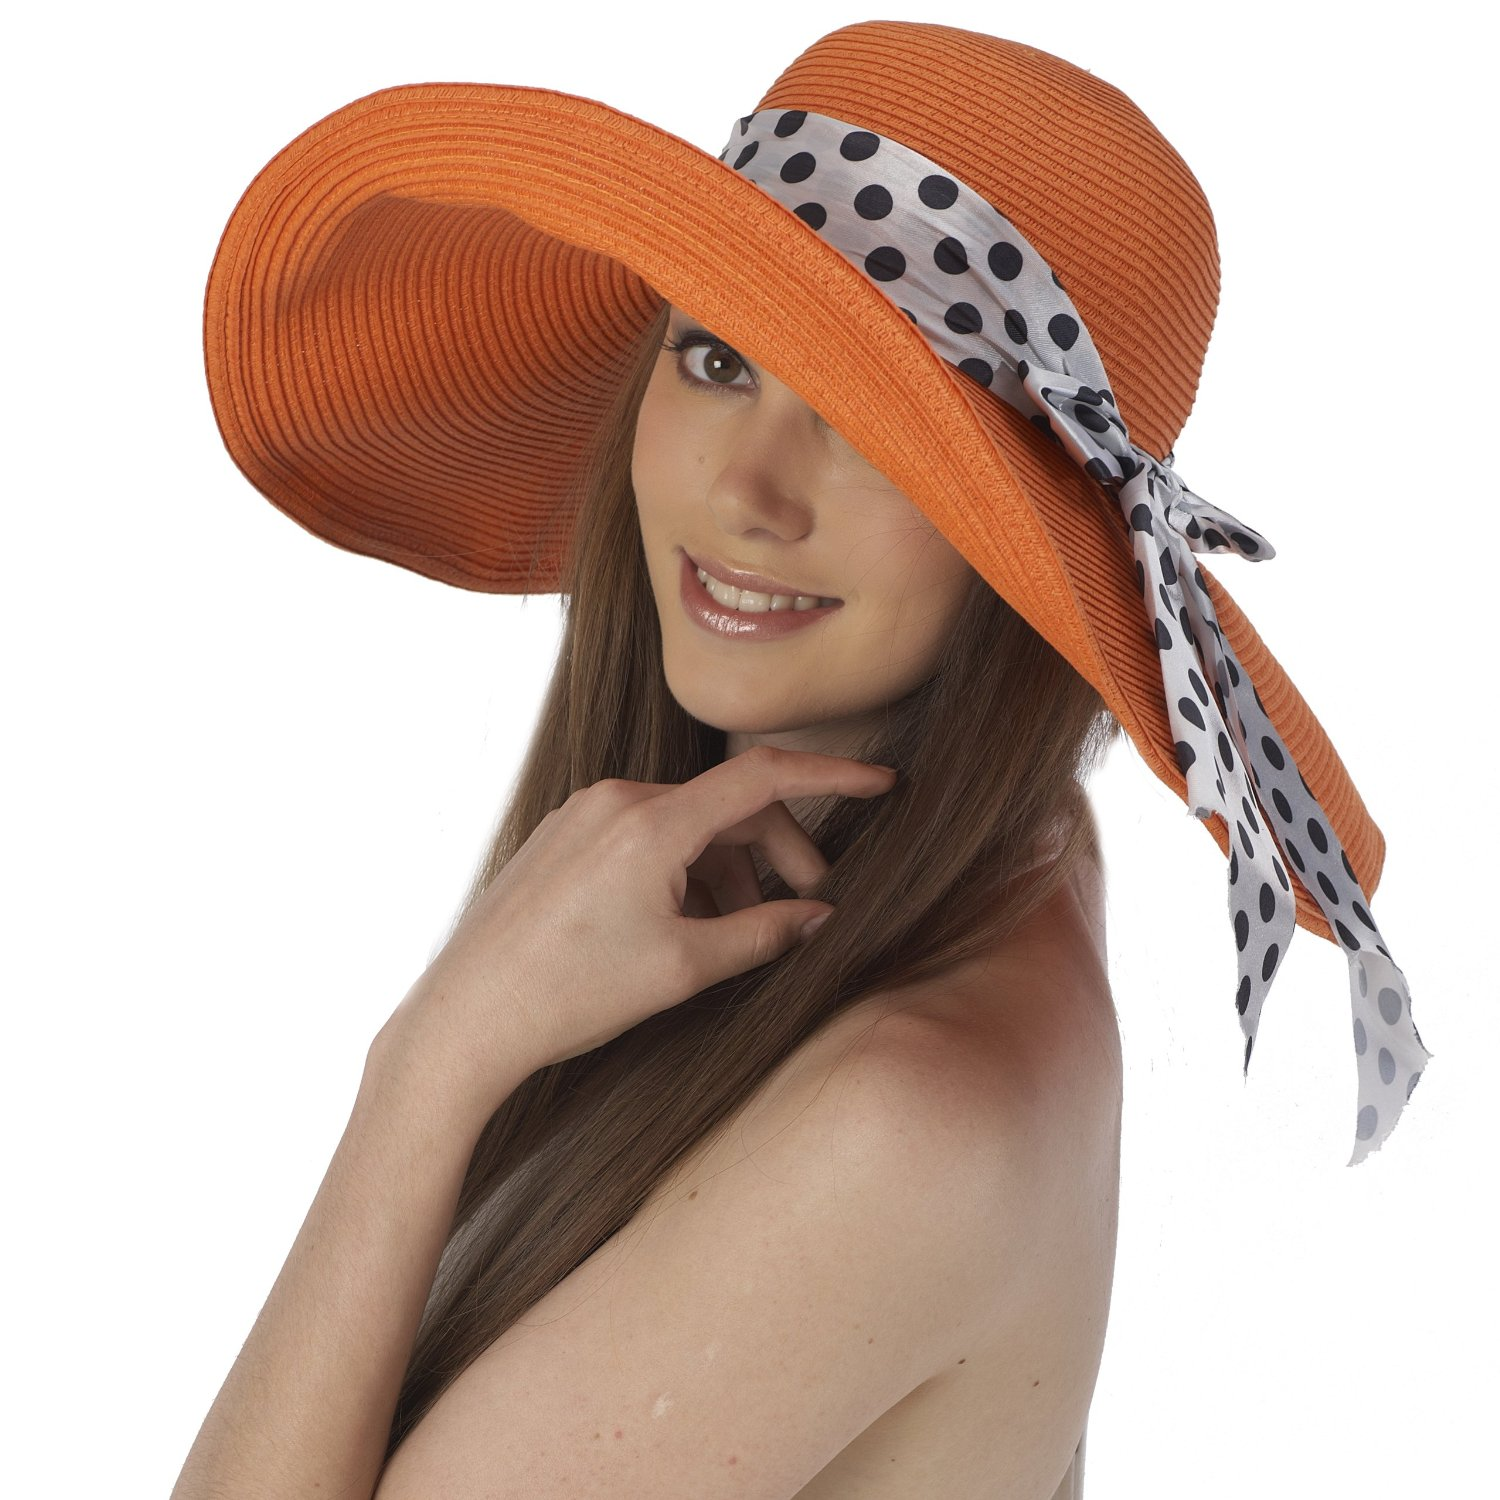 LADY GOLF Sun Protection Wide Brim Hats & Visors Ideal for daily wear, a day at the beach, picnics and outings, poolside and even for after-care from plastic surgery, face-lifts and skin biopsies, cancers and mole removals.